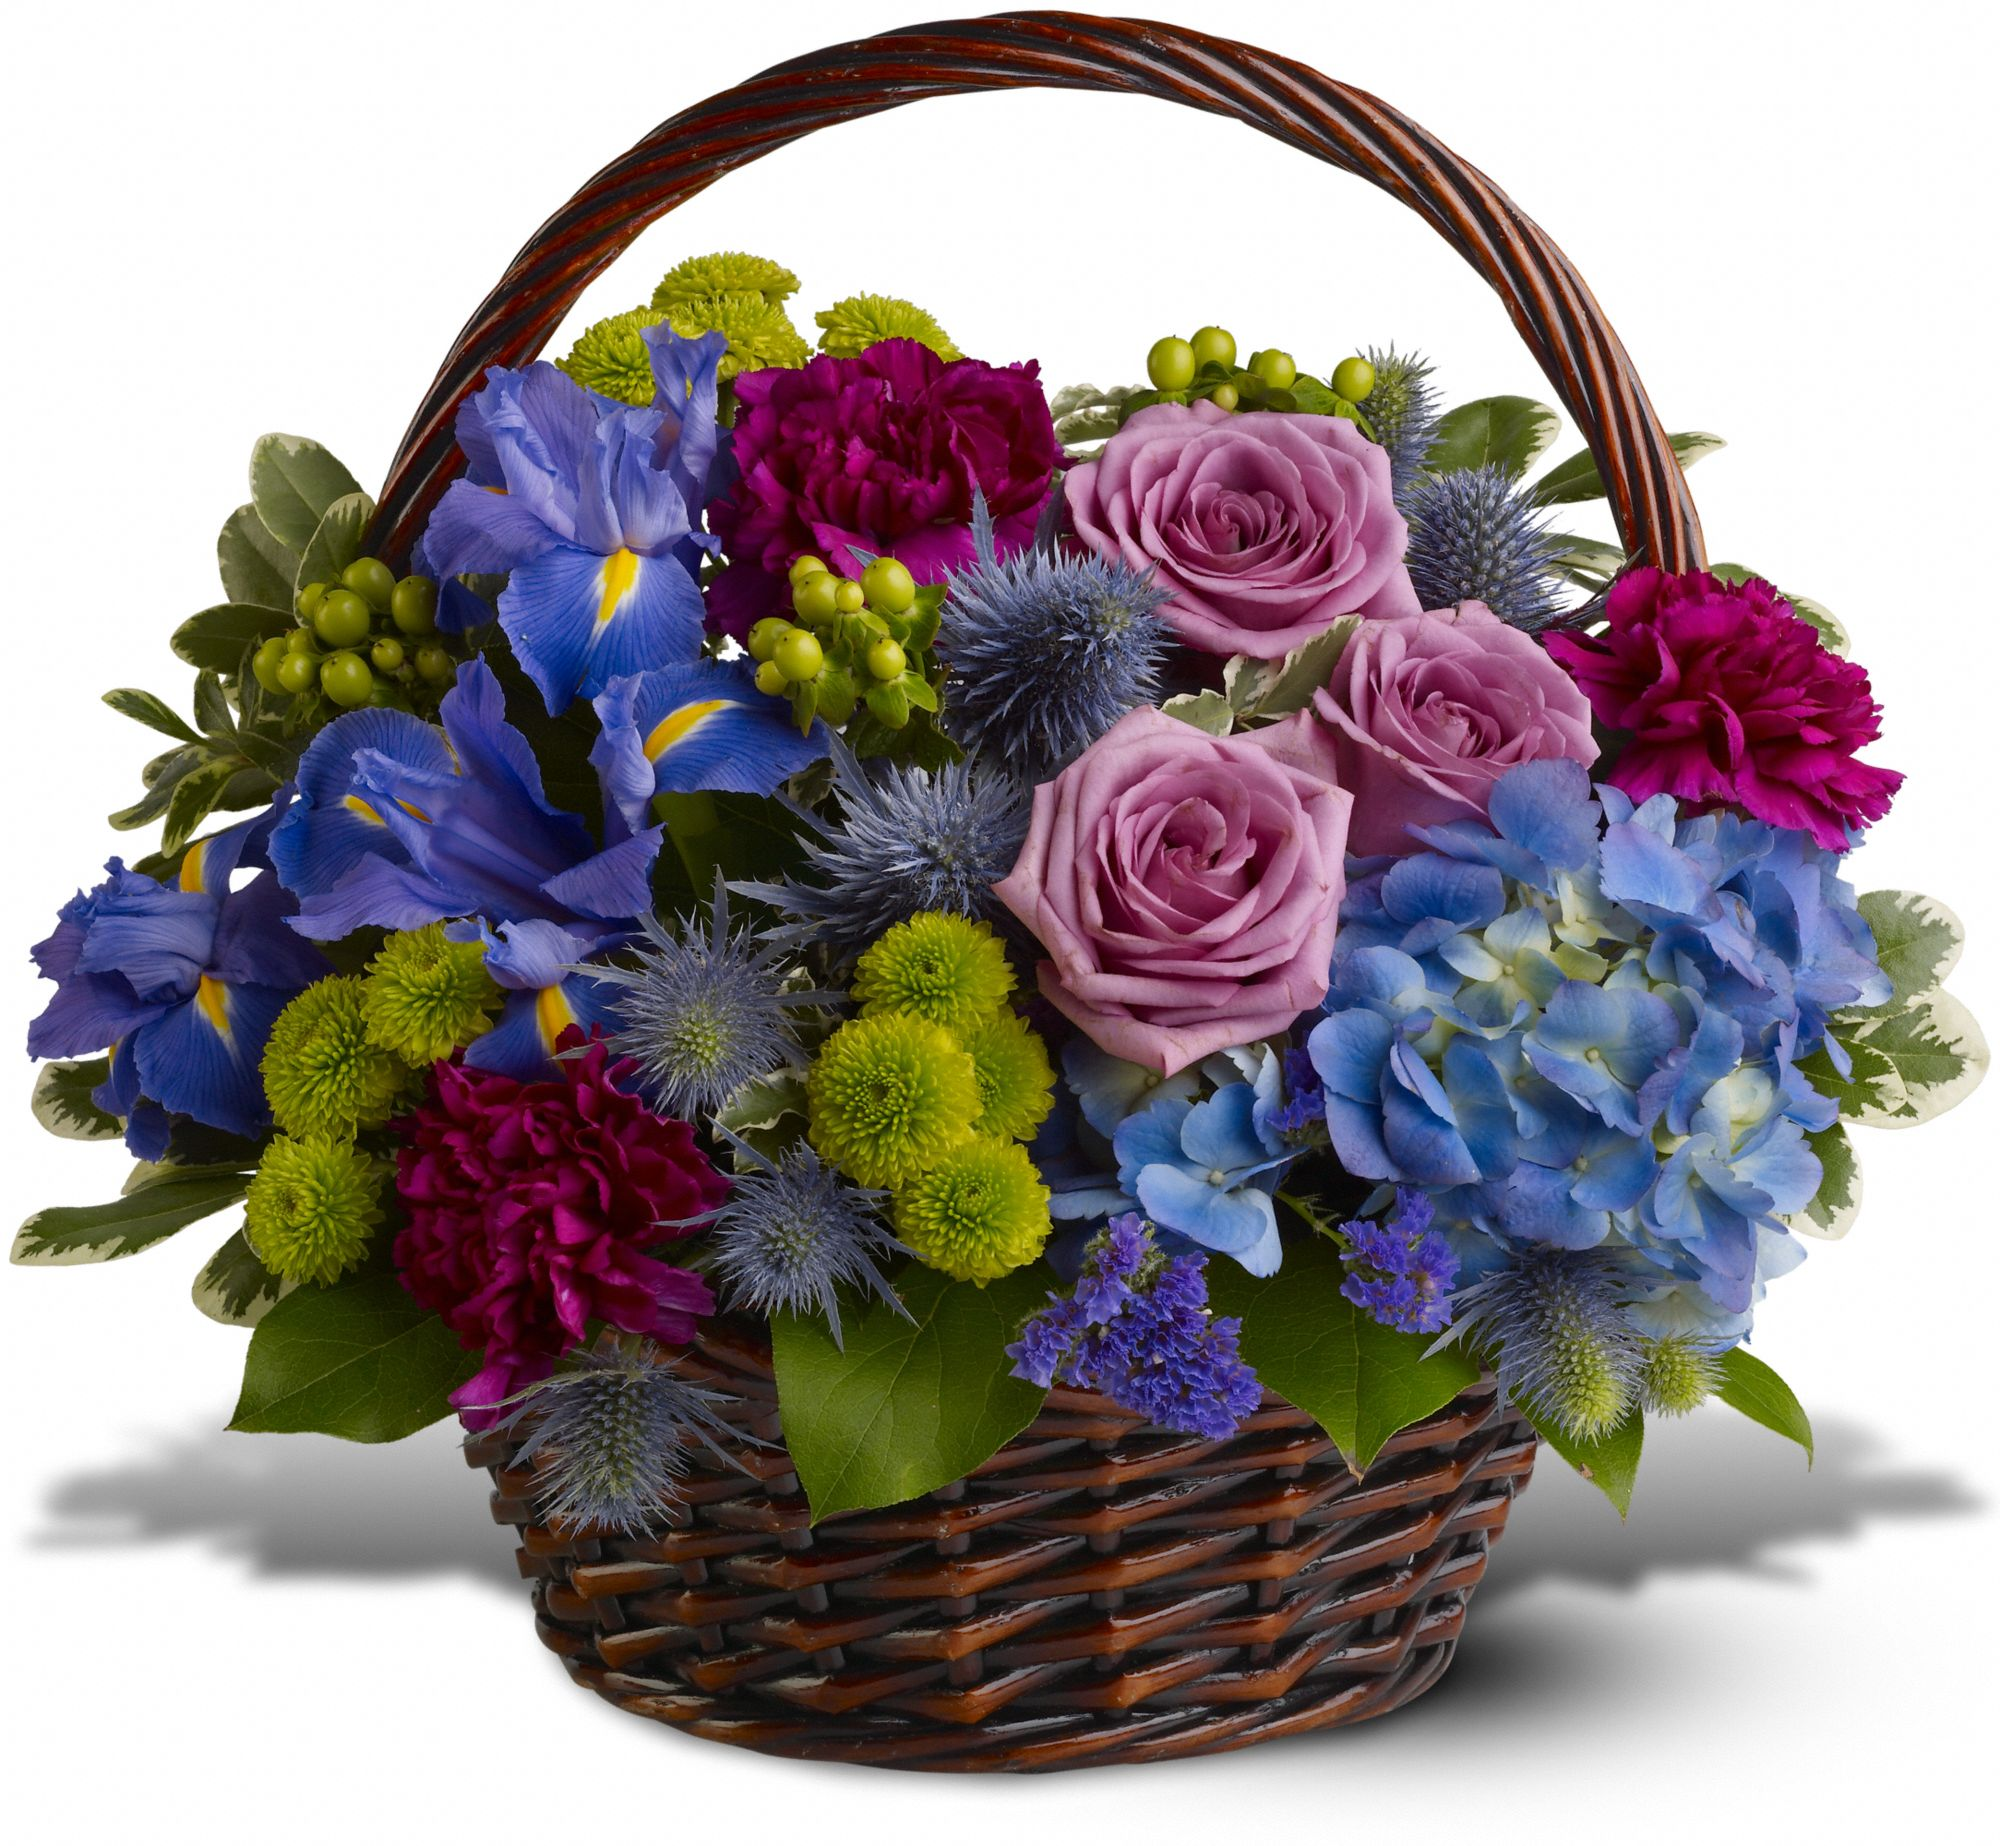 Hunt Valley Florals & Gifts, Hunt Valley, Maryland - Twilight Garden Basket, picture